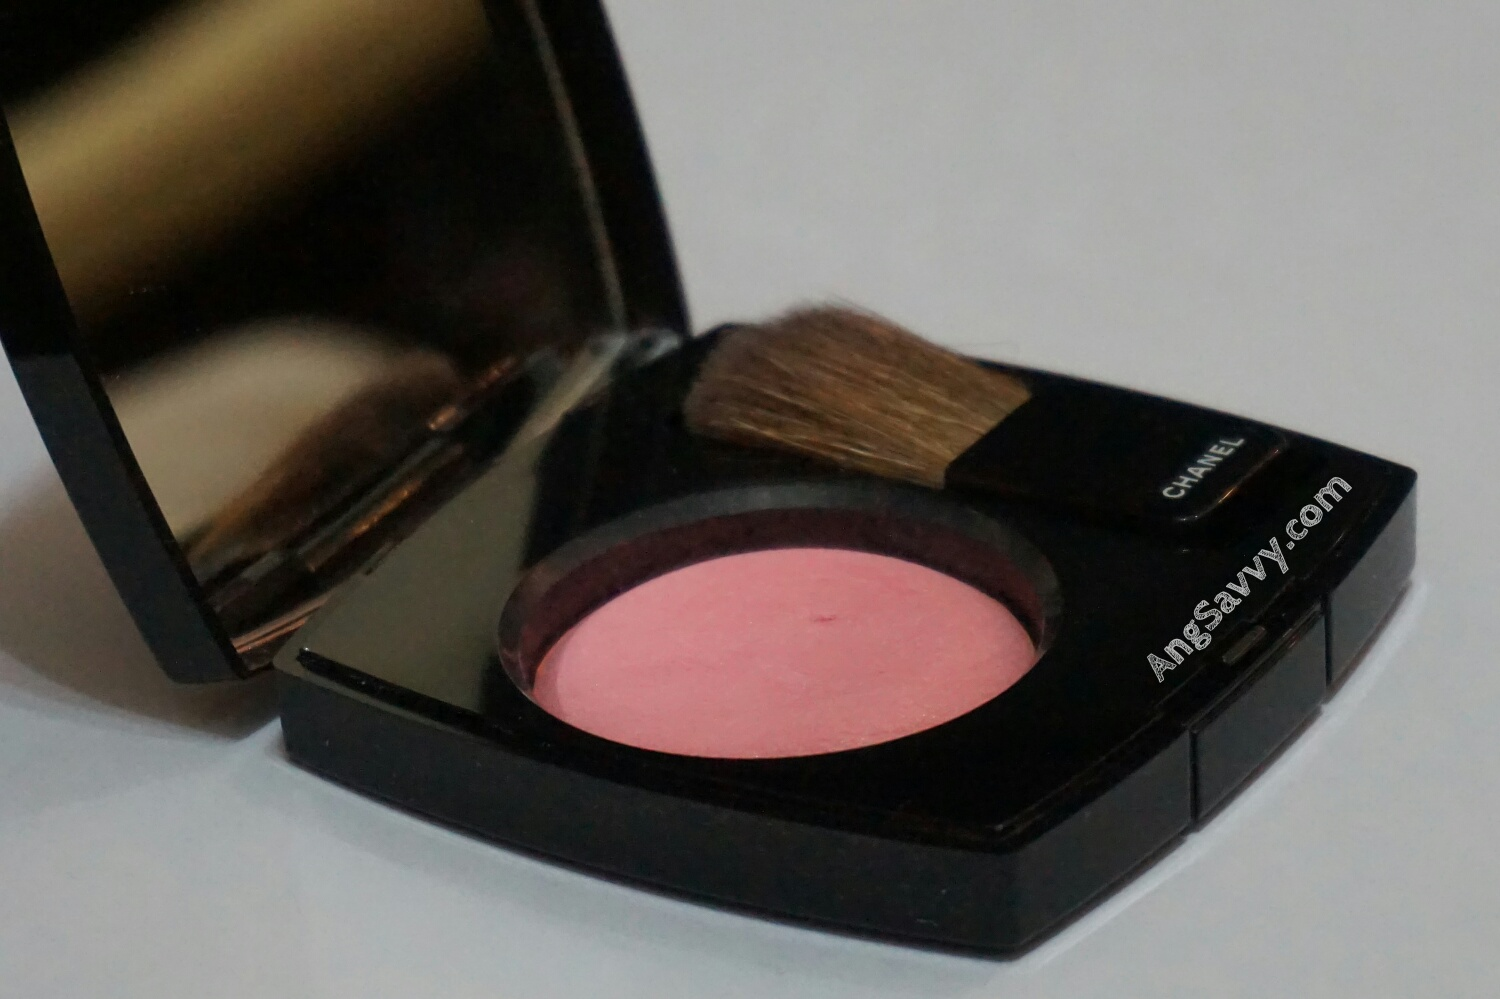 Chanel Joues Contraste Blush 87 Sakura